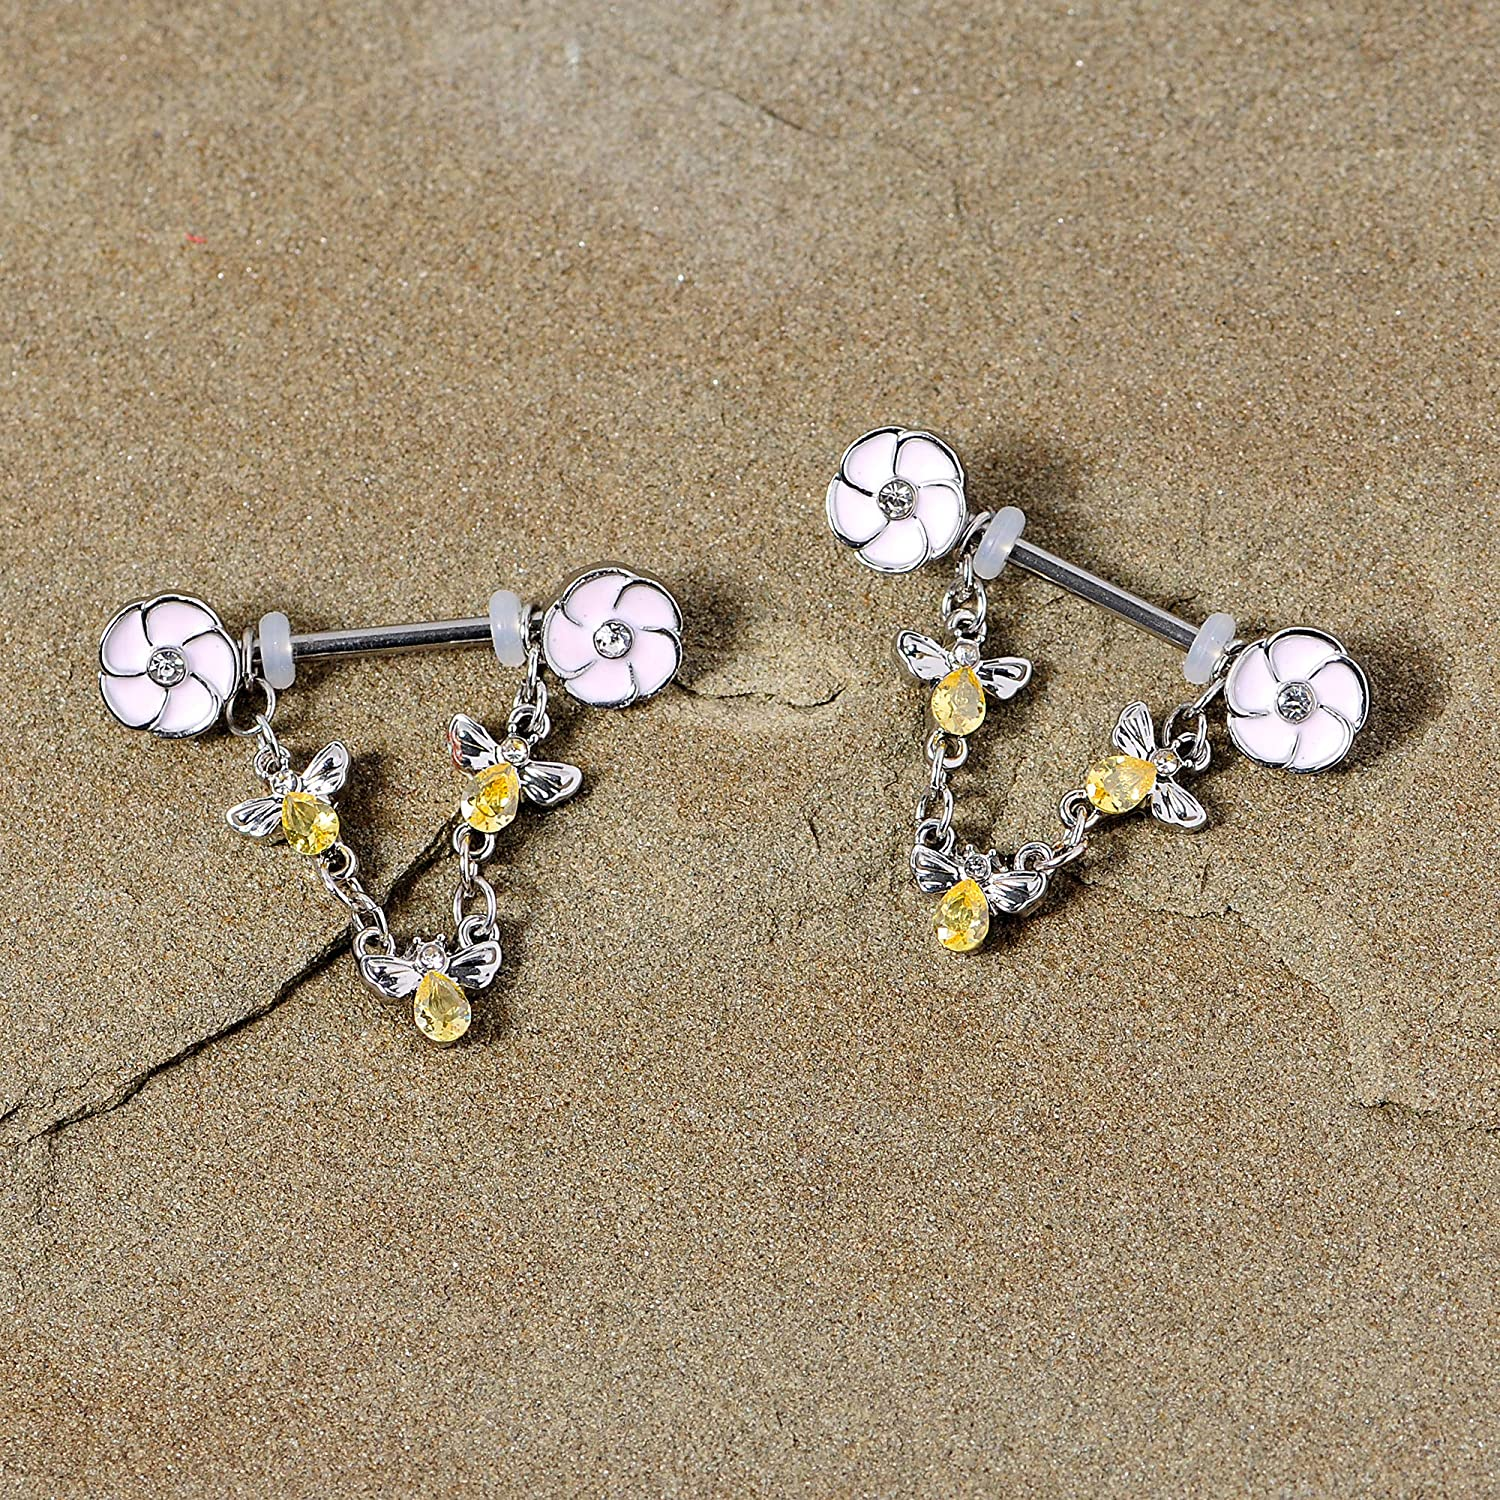 Body Candy 14G Womens Nipplerings Piercing Steel 2Pc Yellow Accent Flower Bee Dangle Nipple Ring Set 5/8